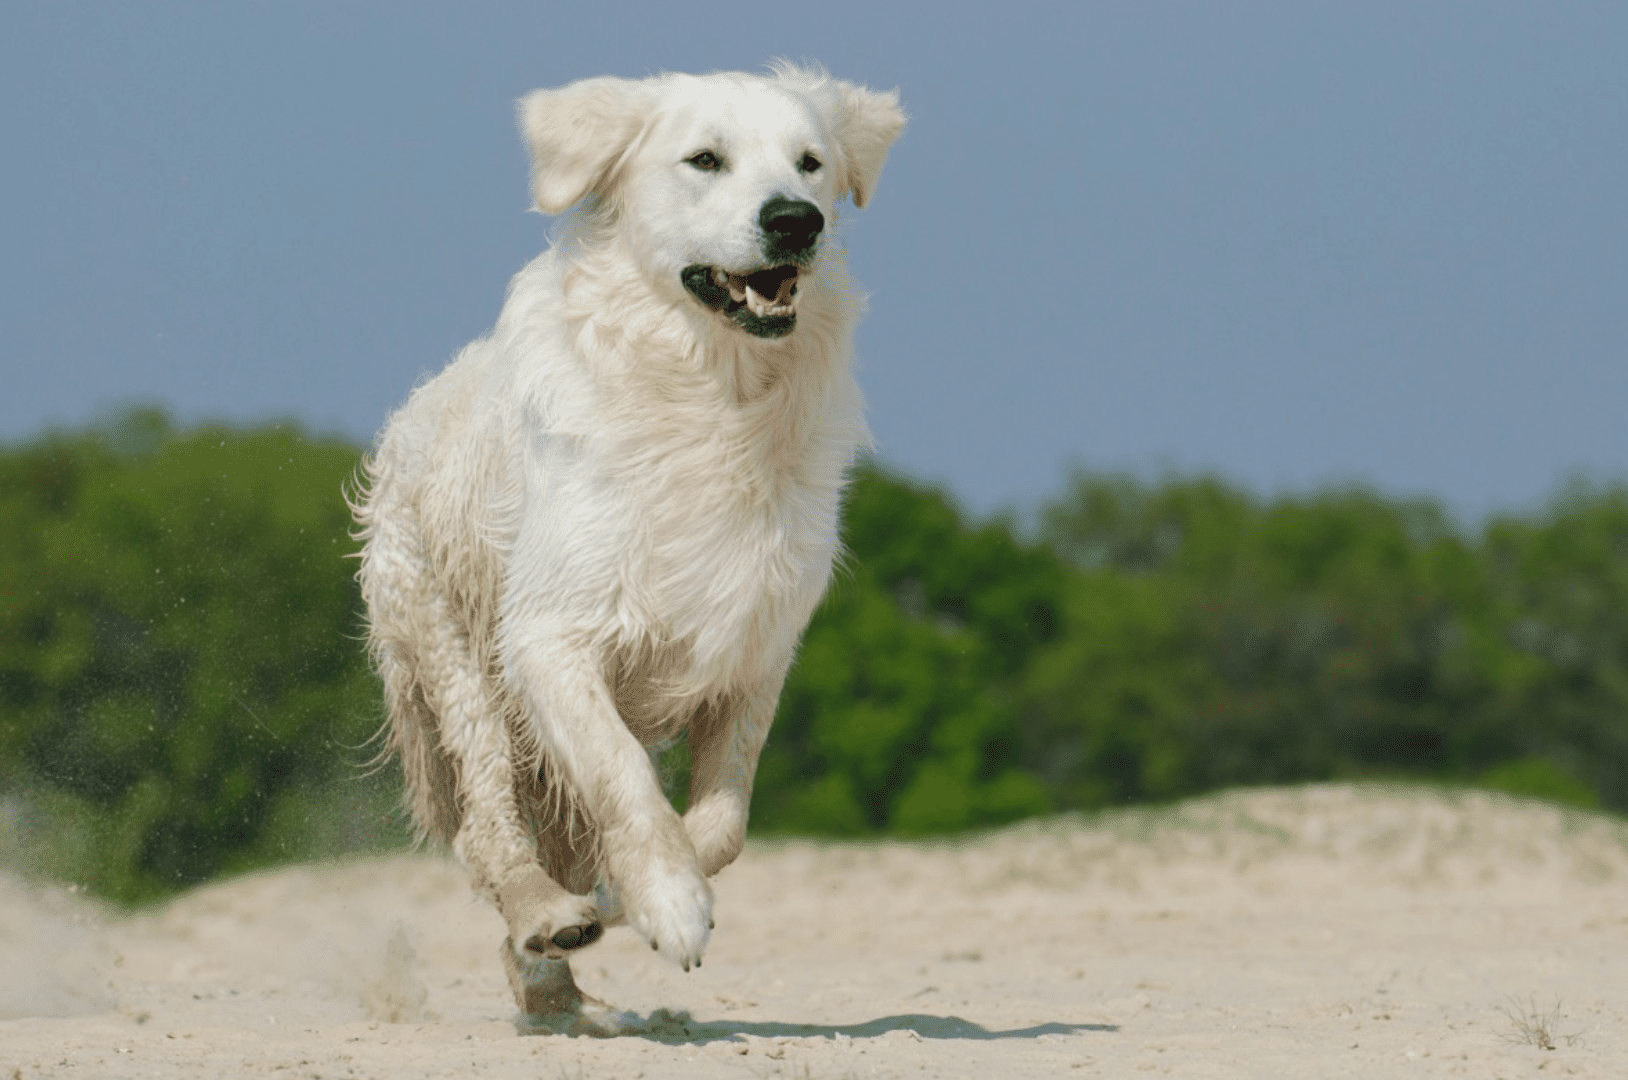 A Great Pyrenees running on a beach.